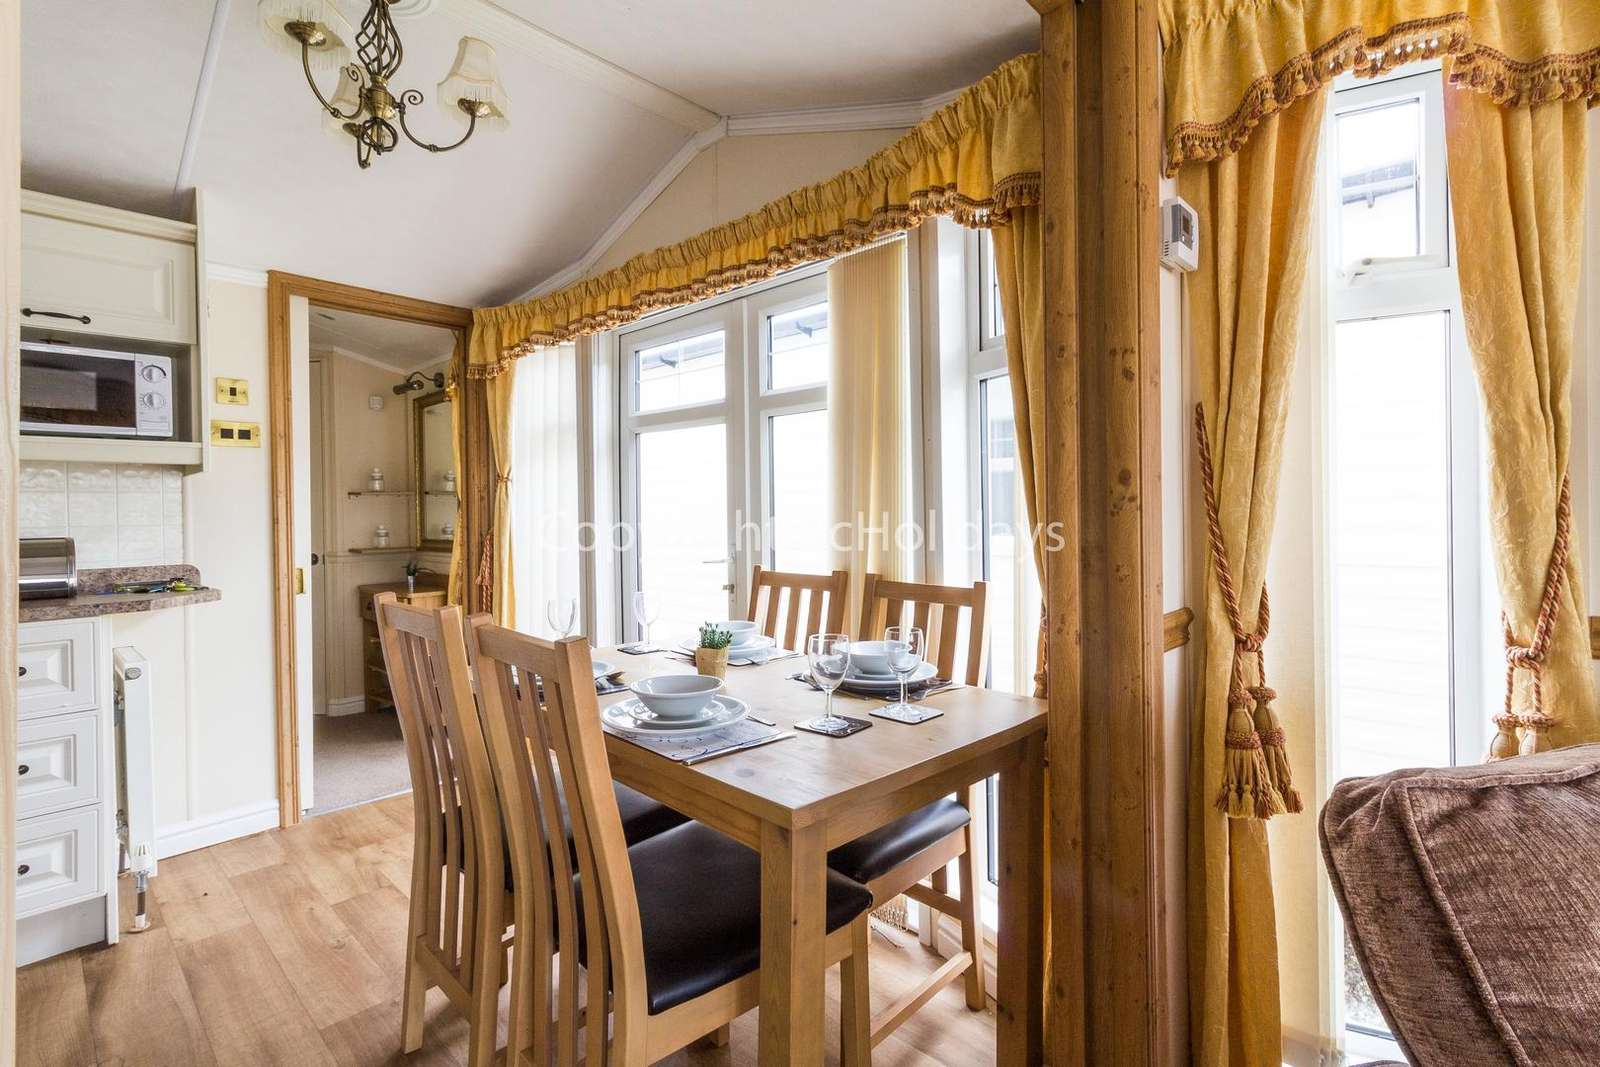 A spacious dining area, great for family time!